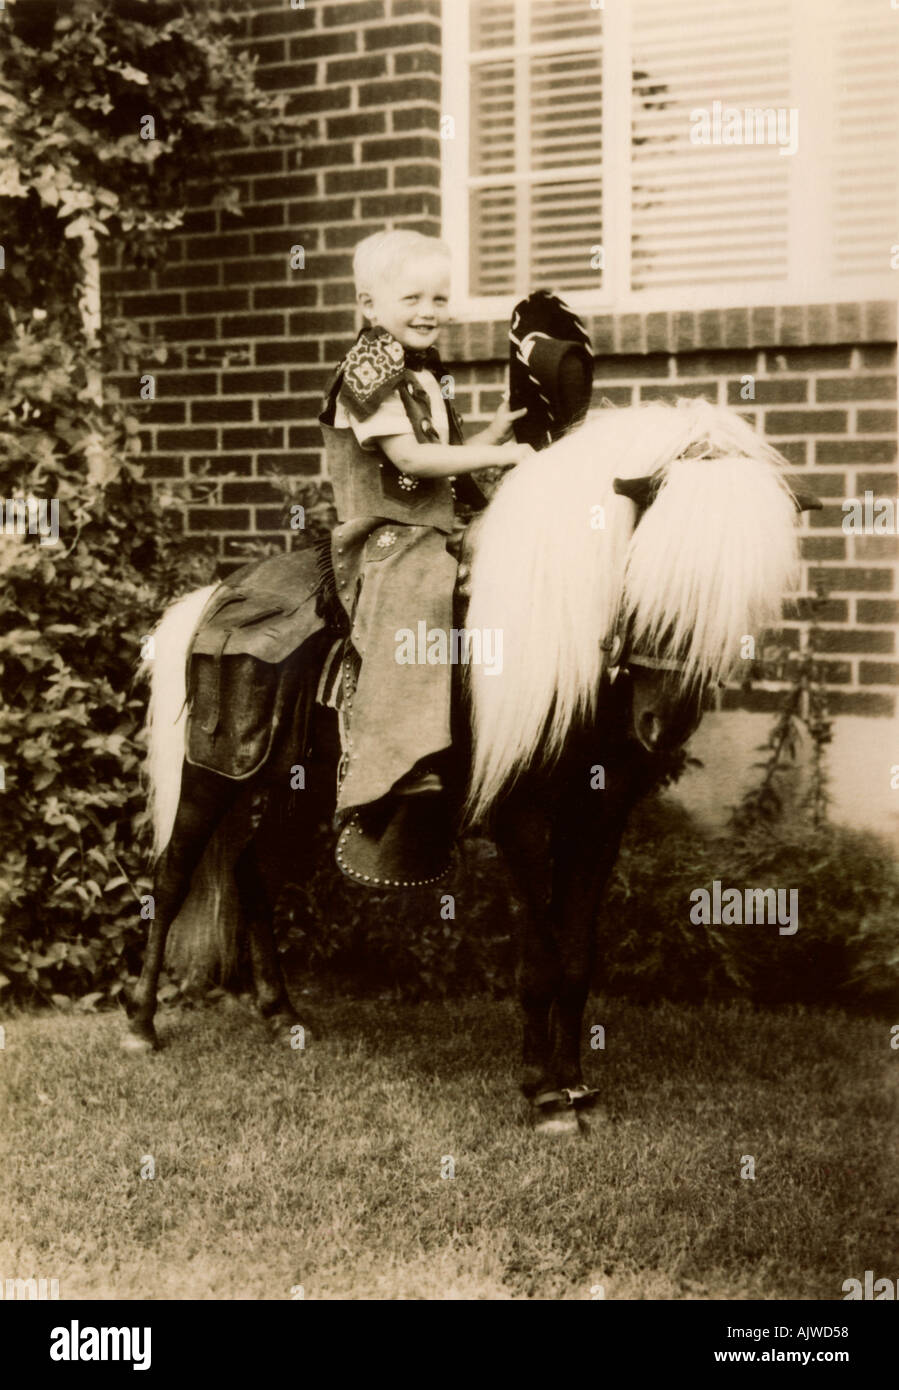 1950 s portrait of a young boy dressed in a cowboy suit sitting on a shetland pony - Stock Image